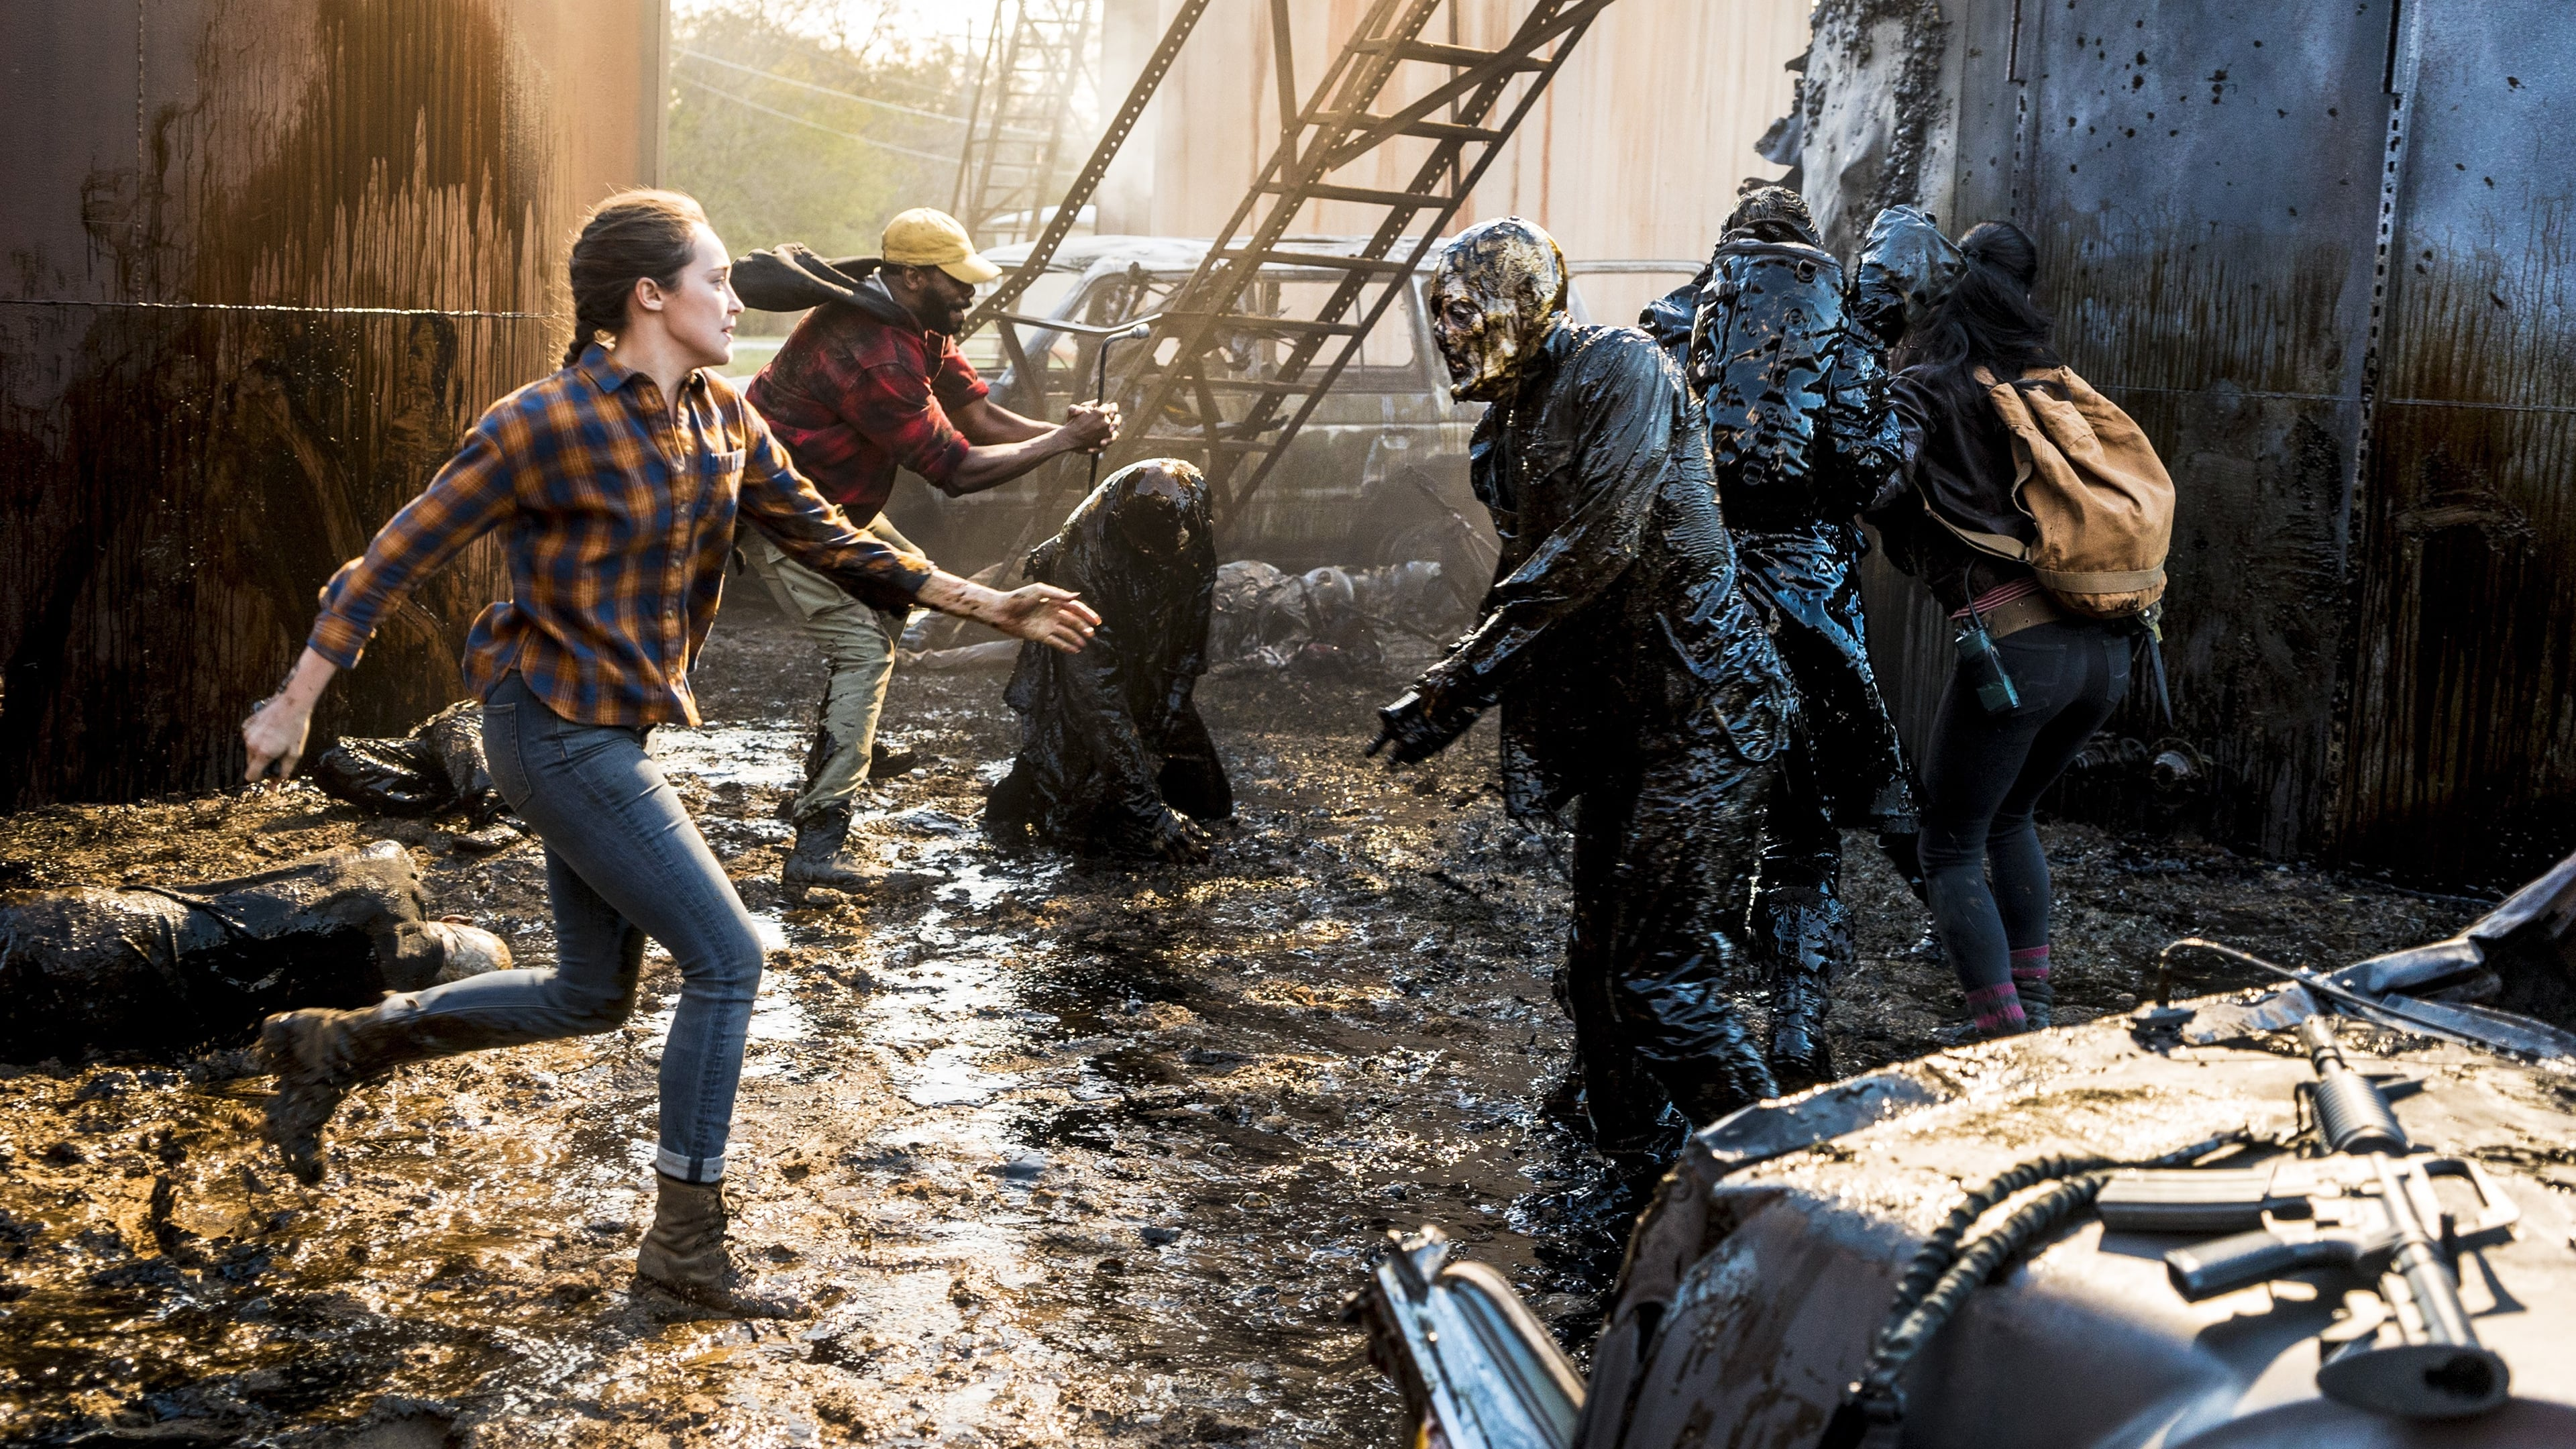 Watch Fear the Walking Dead: 4x2 Episode Online For Free - Movie4u